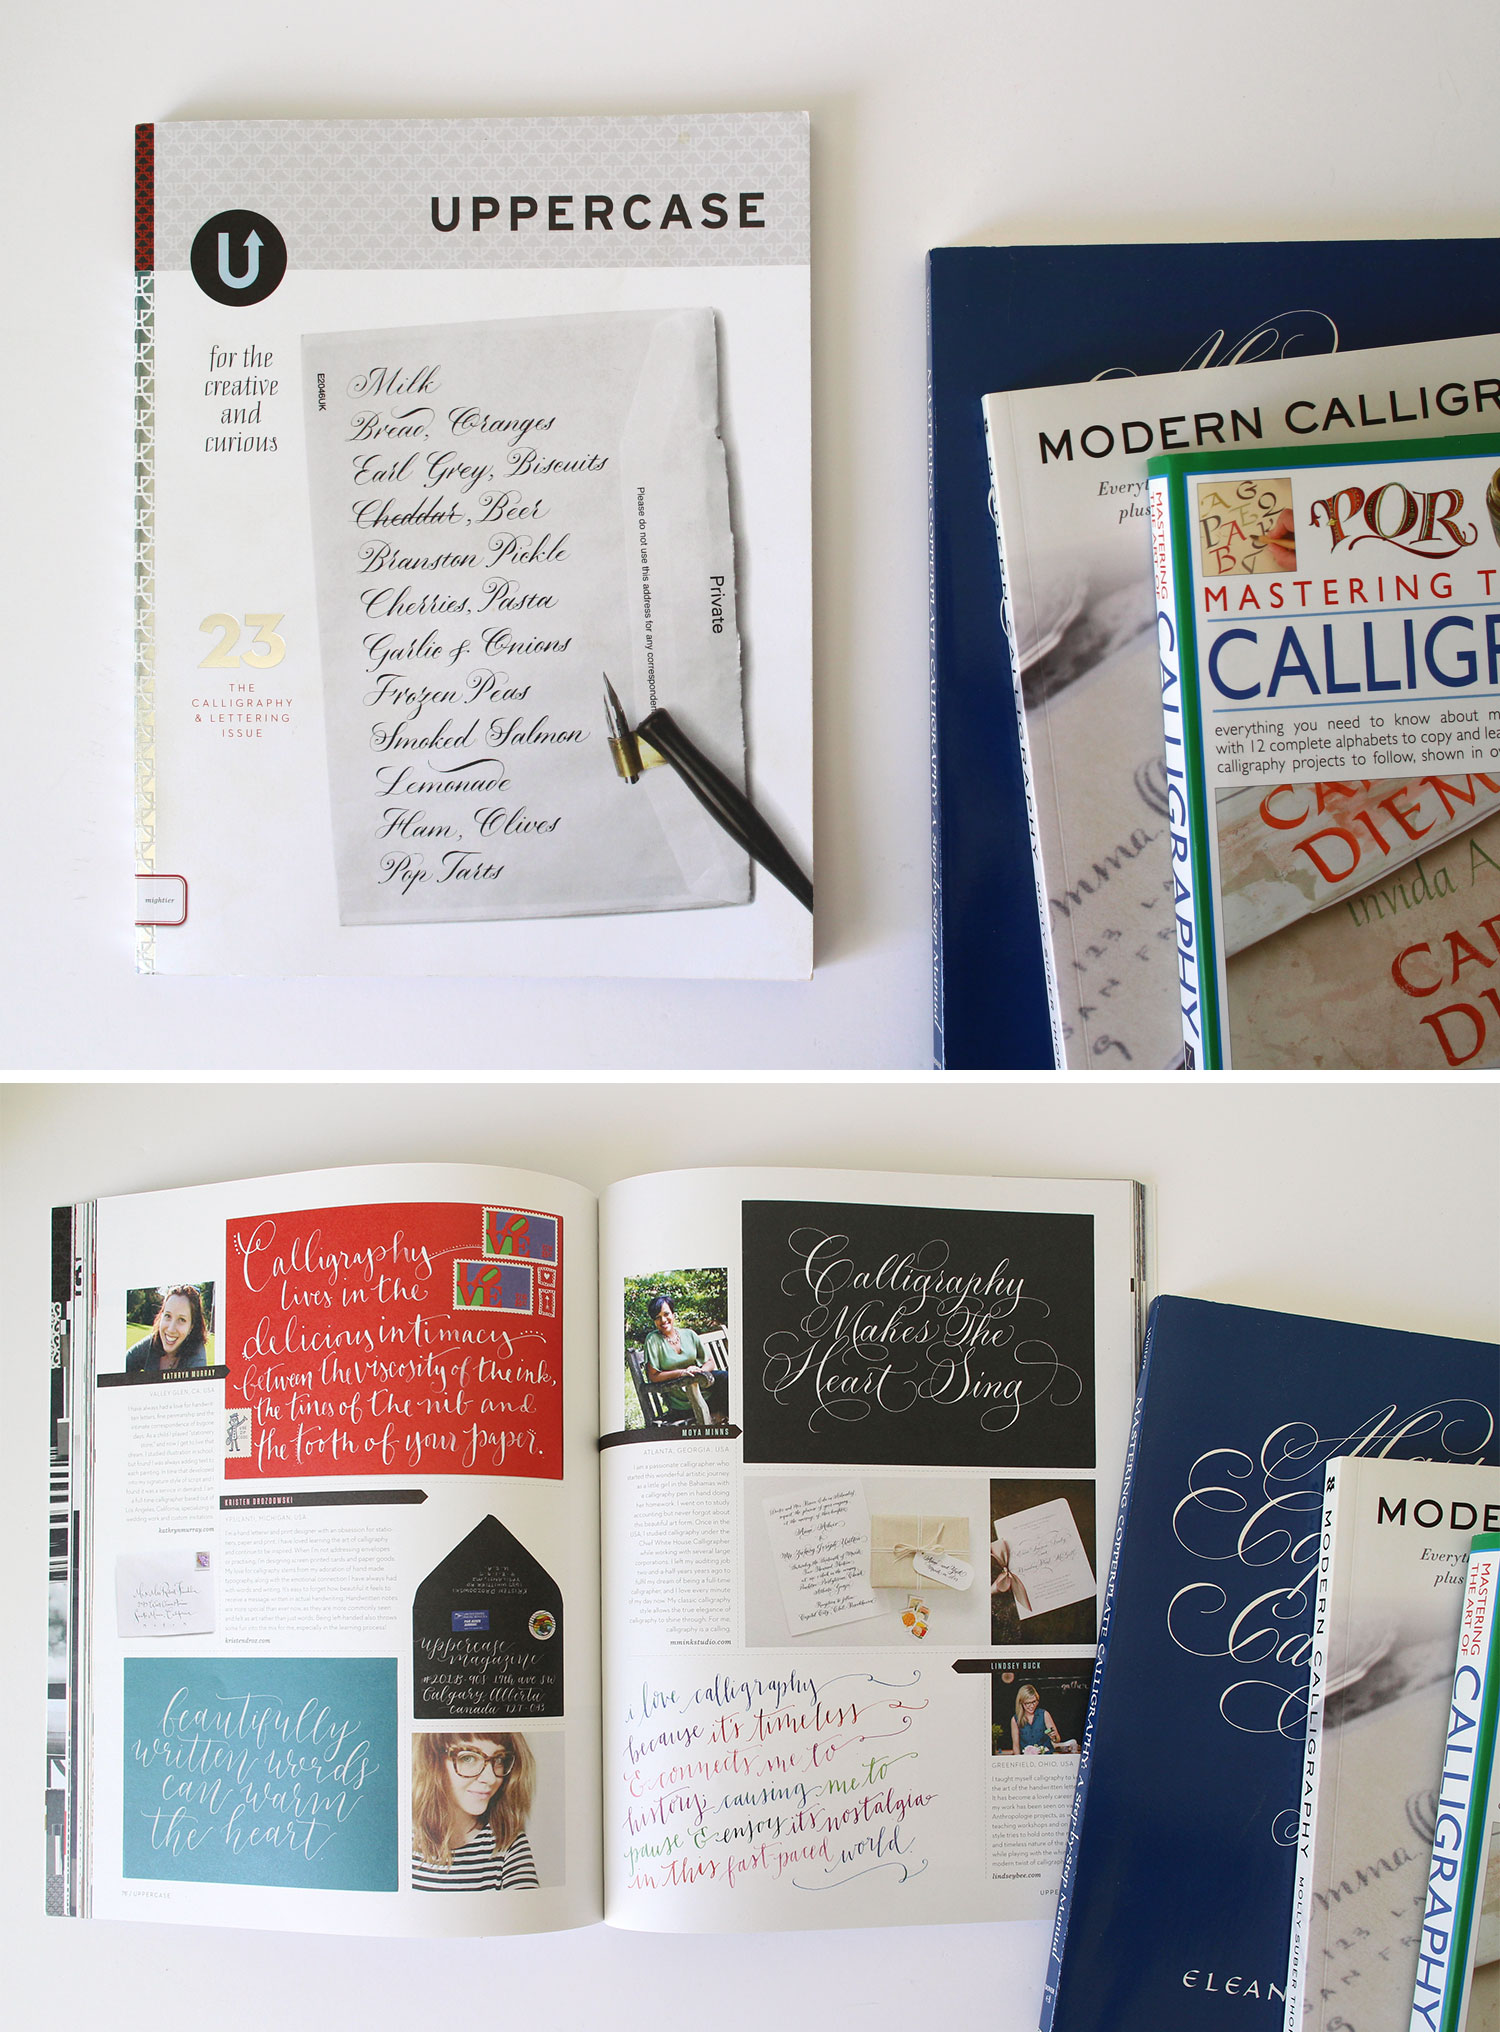 Purchase: UPPERCASE Magazine, The Calligraphy and Lettering Issue